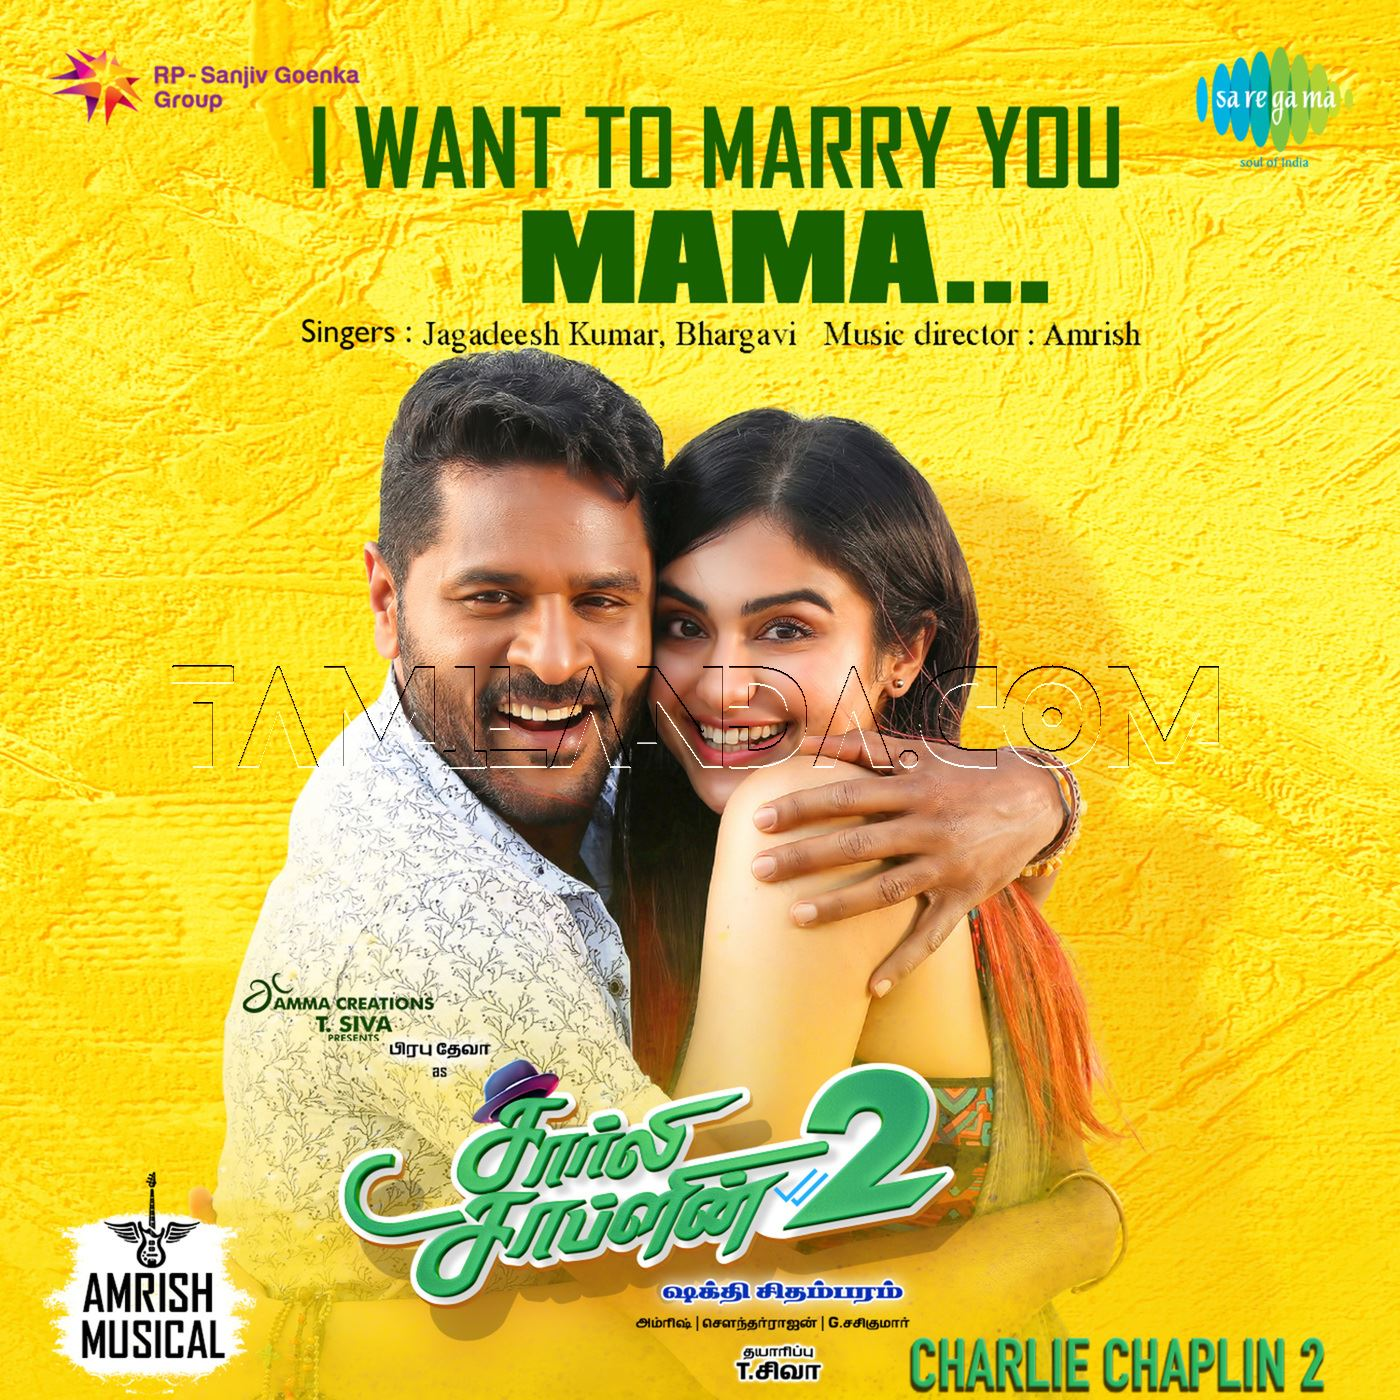 I Want to Marry You Mama (From Charlie Chaplin 2) – Single FLAC Song